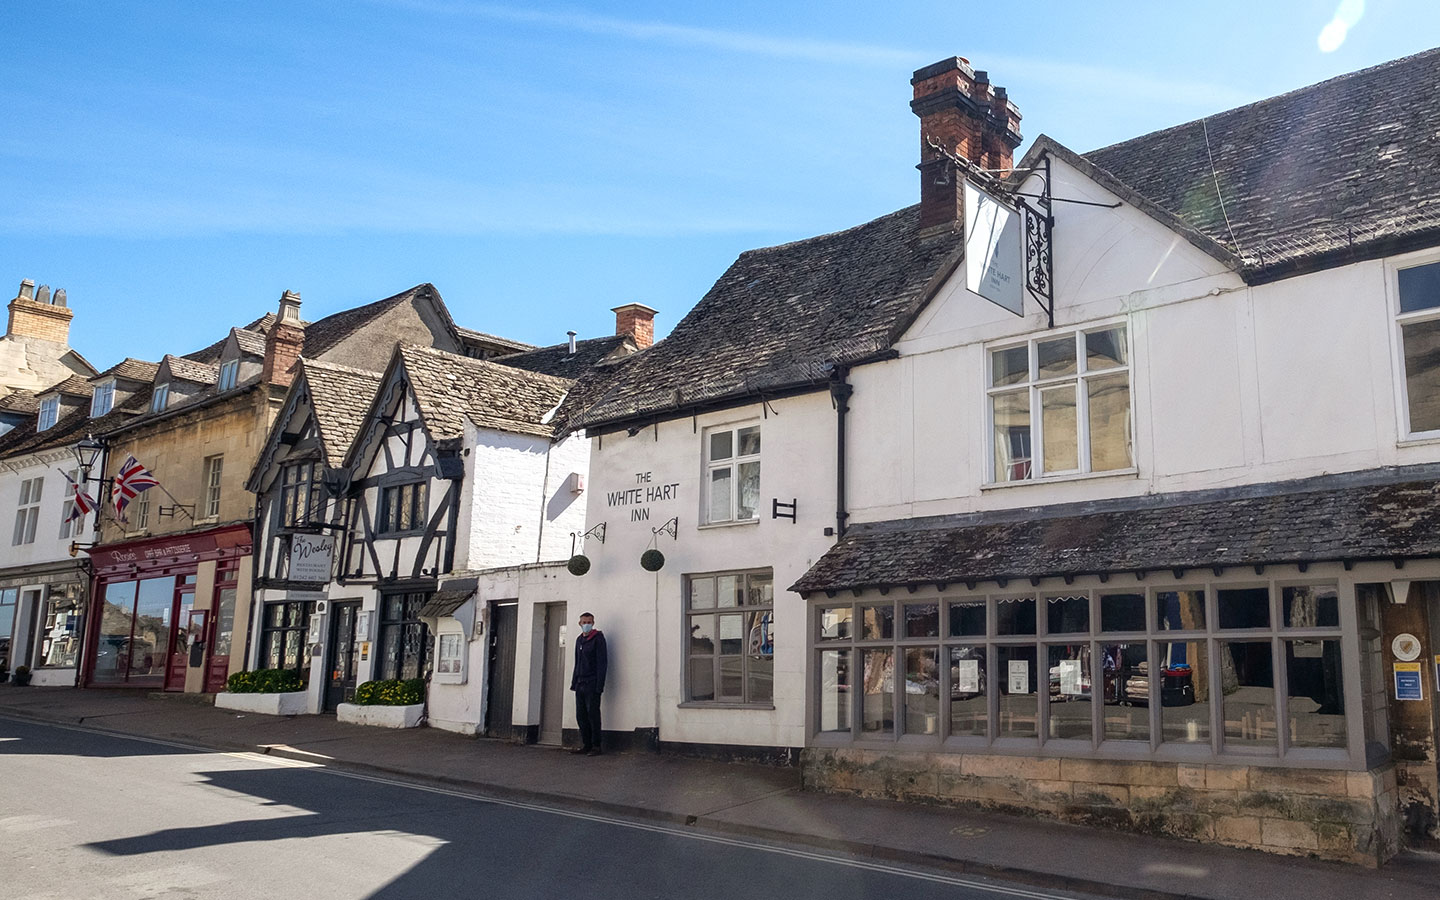 The White Hart and Wesley House in Winchcombe, Cotswolds